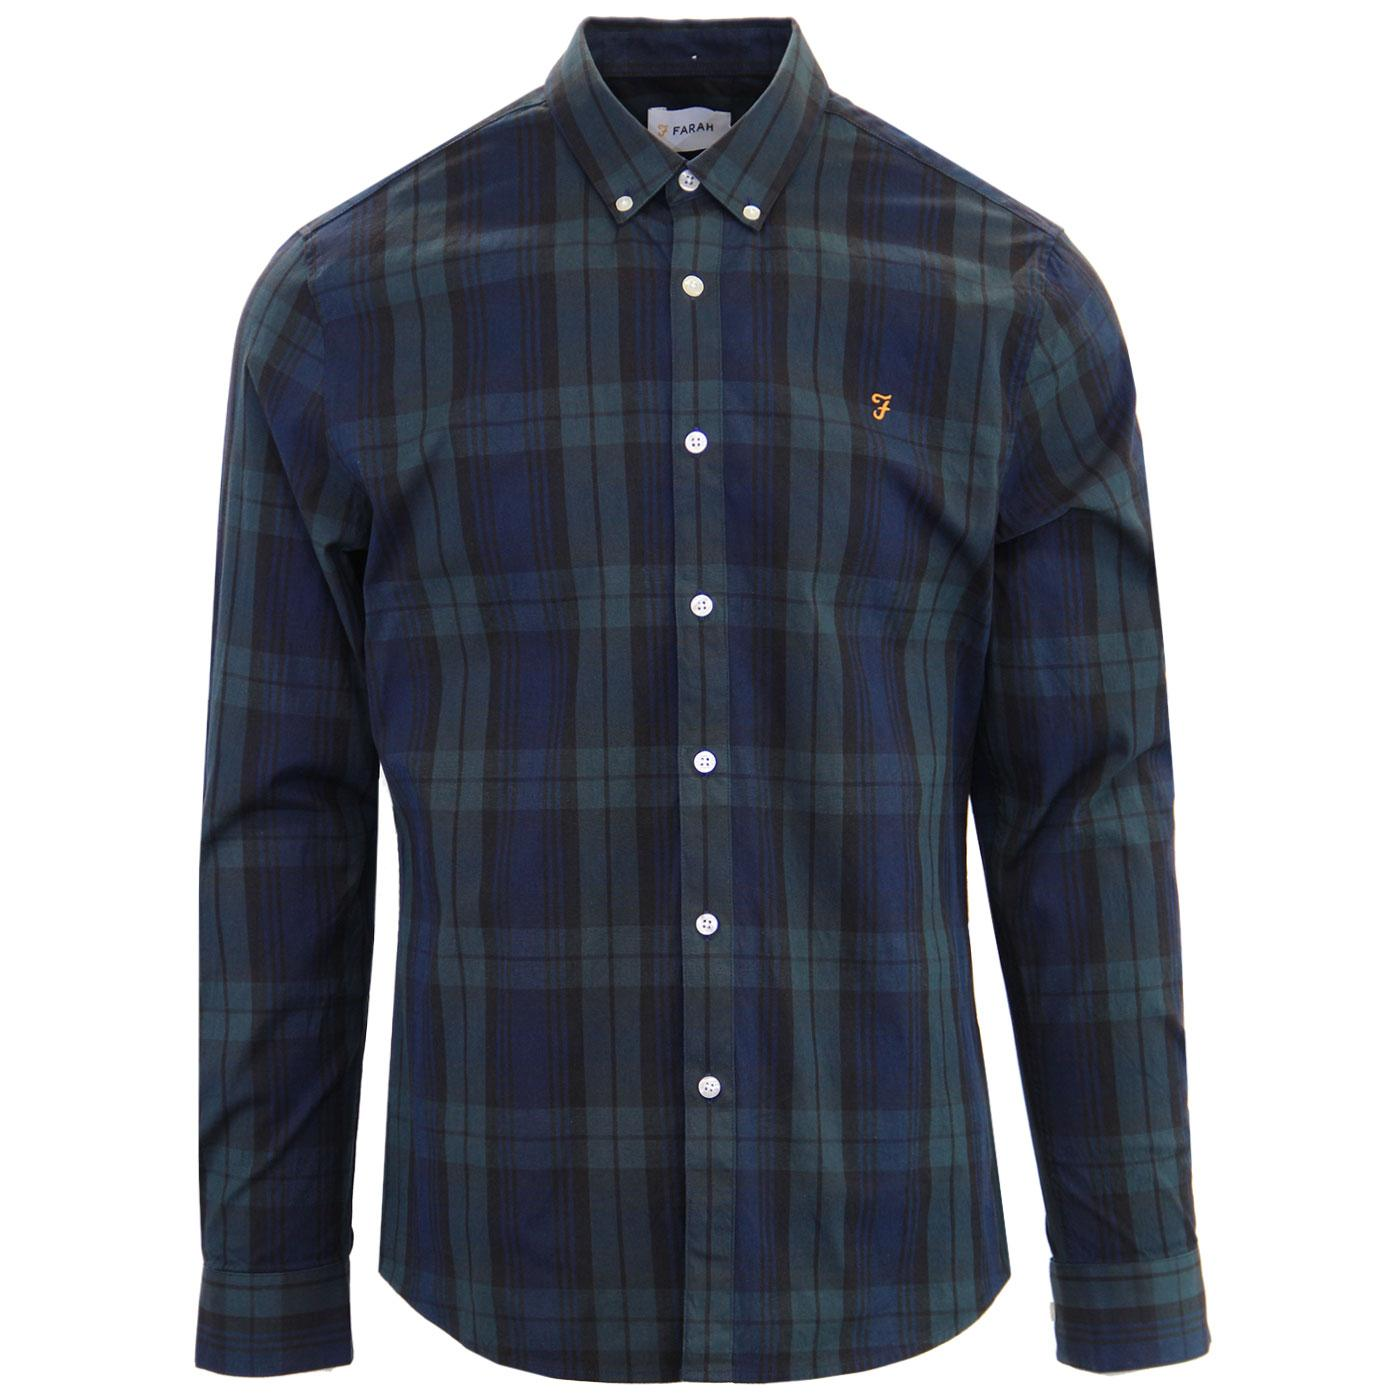 Brewer FARAH Blackwatch Tartan Button Down Shirt